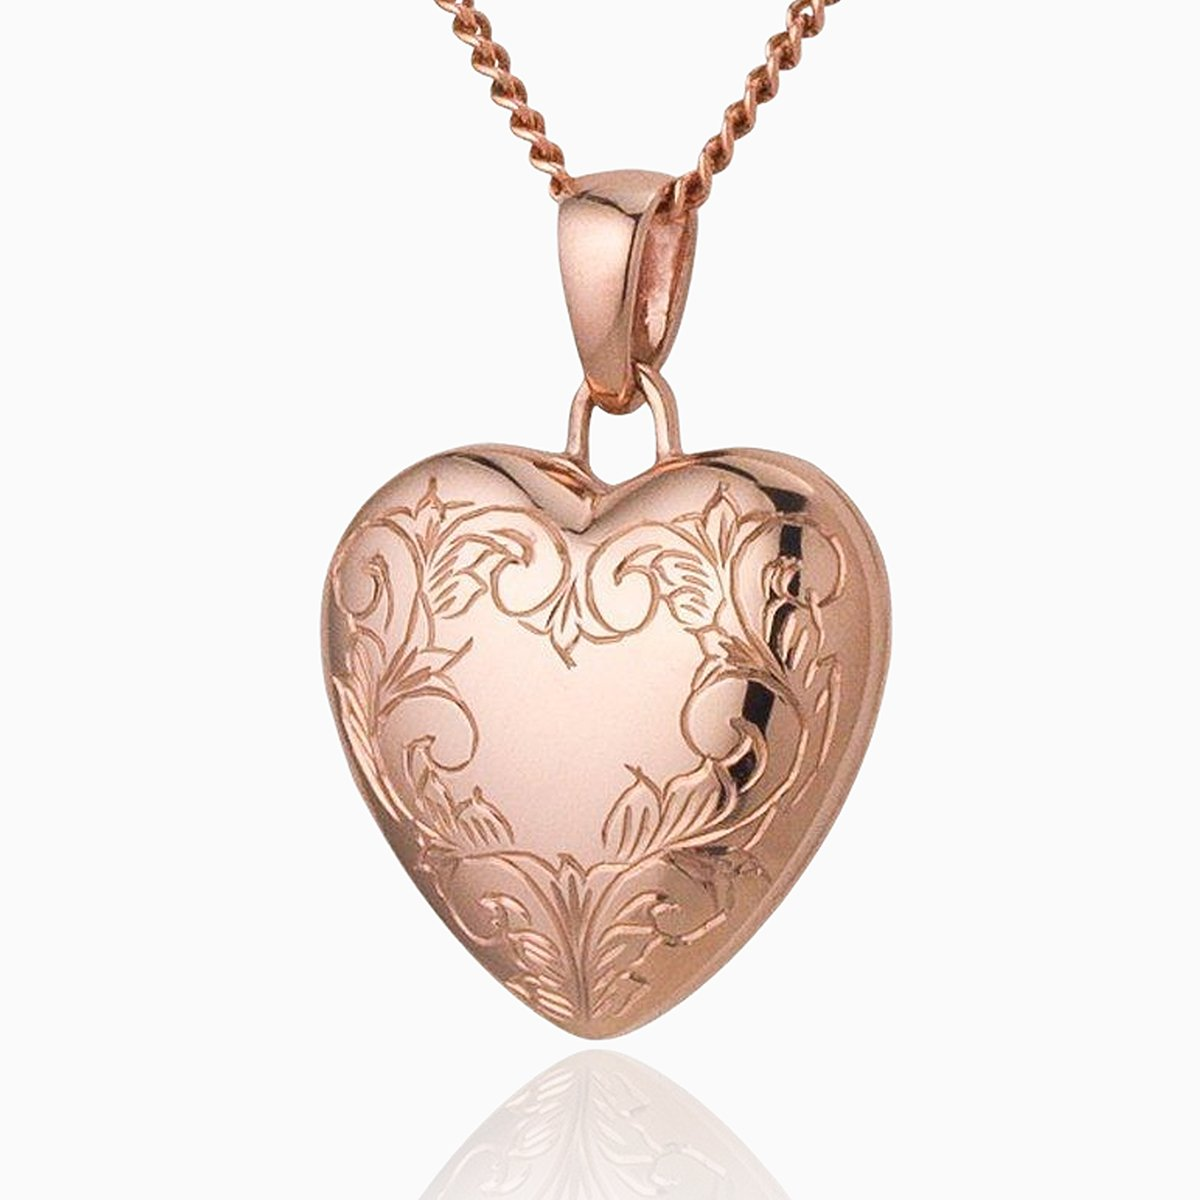 Product title: Rose Gold Engraved Heart Locket, product type: Locket